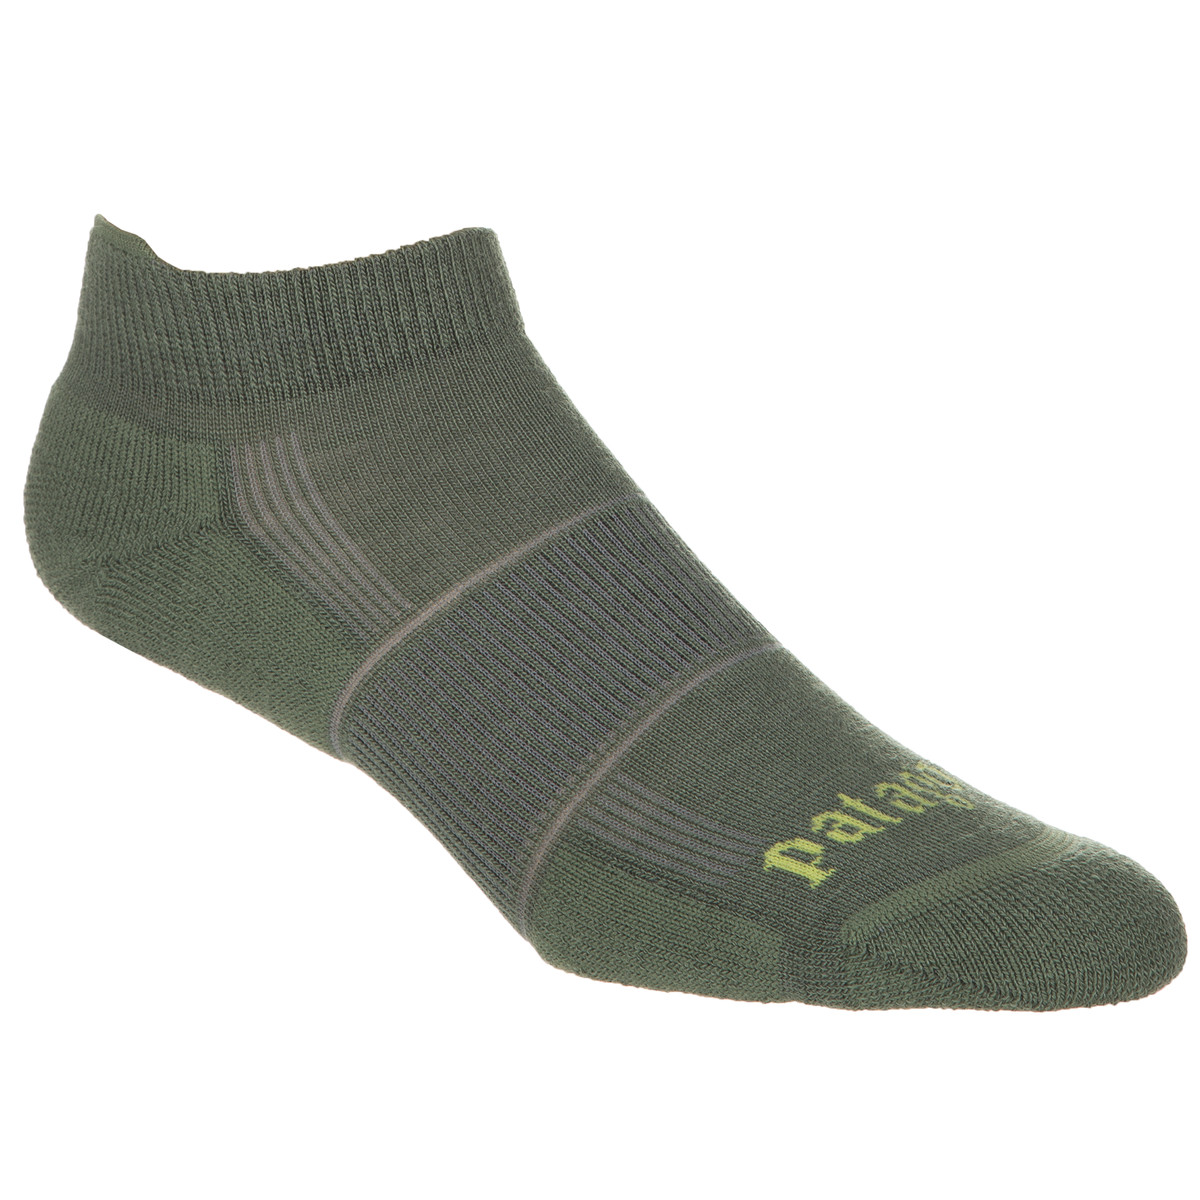 Patagonia Lightweight Merino Run Anklet Socks